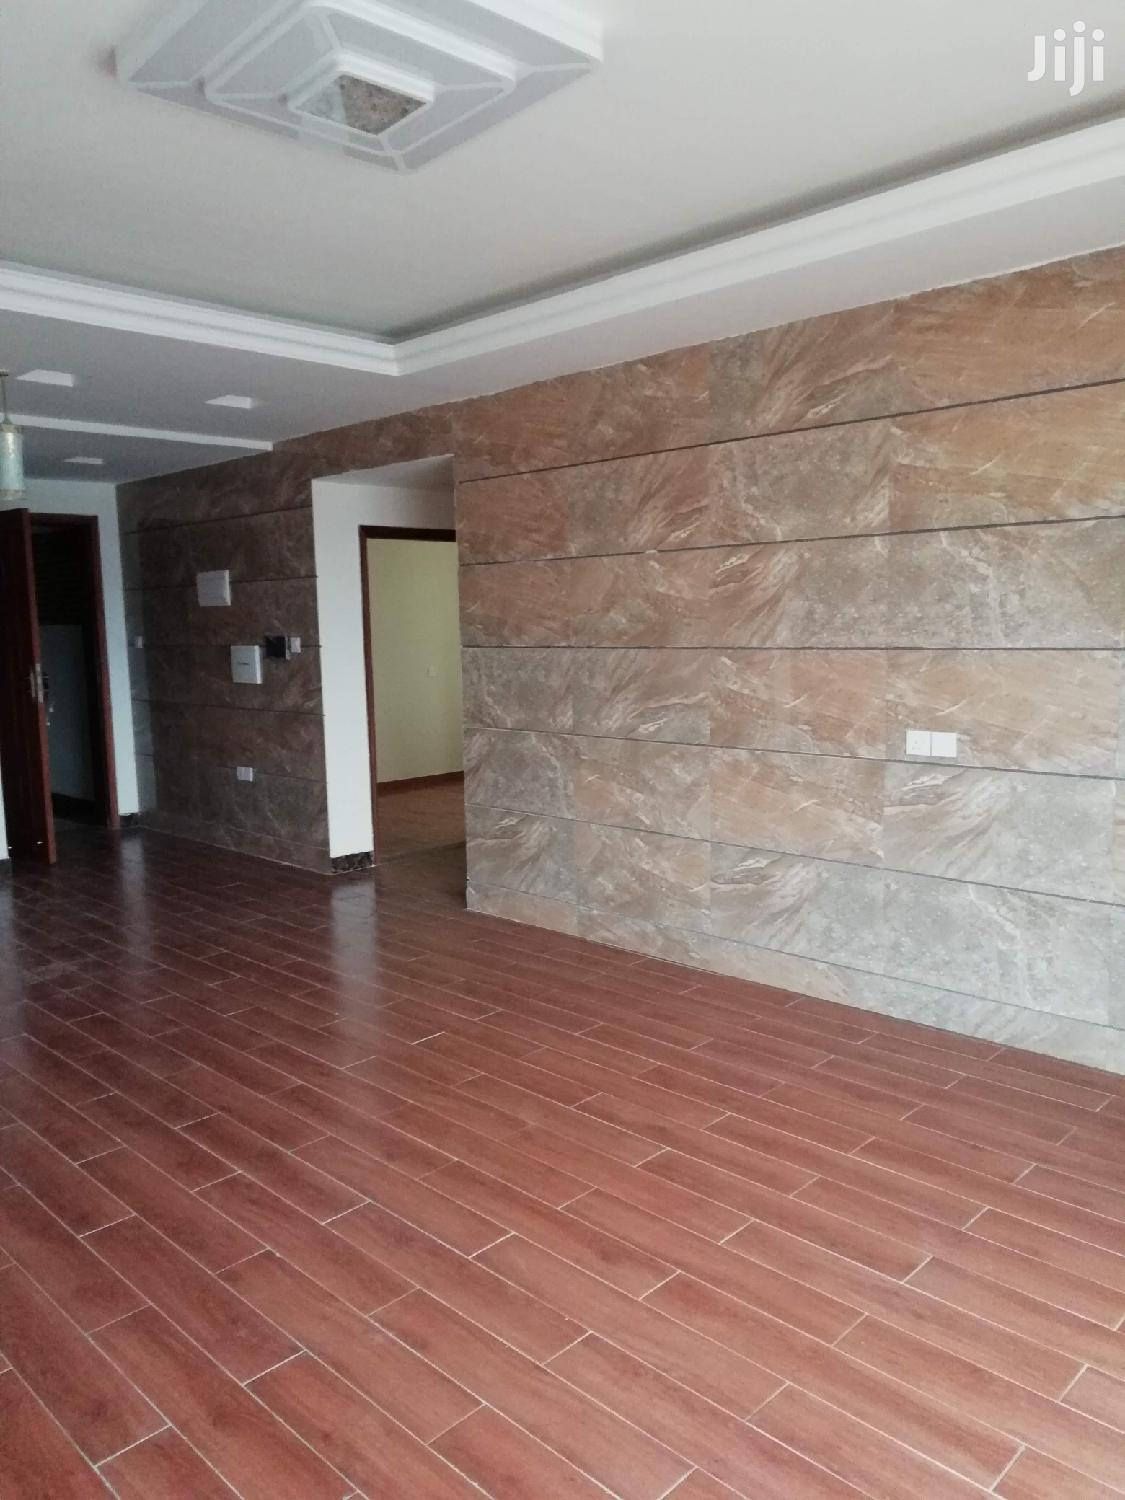 Property World; 2brs Apartment With Pool,Gym,Lift And Secure | Houses & Apartments For Rent for sale in Kilimani, Nairobi, Kenya